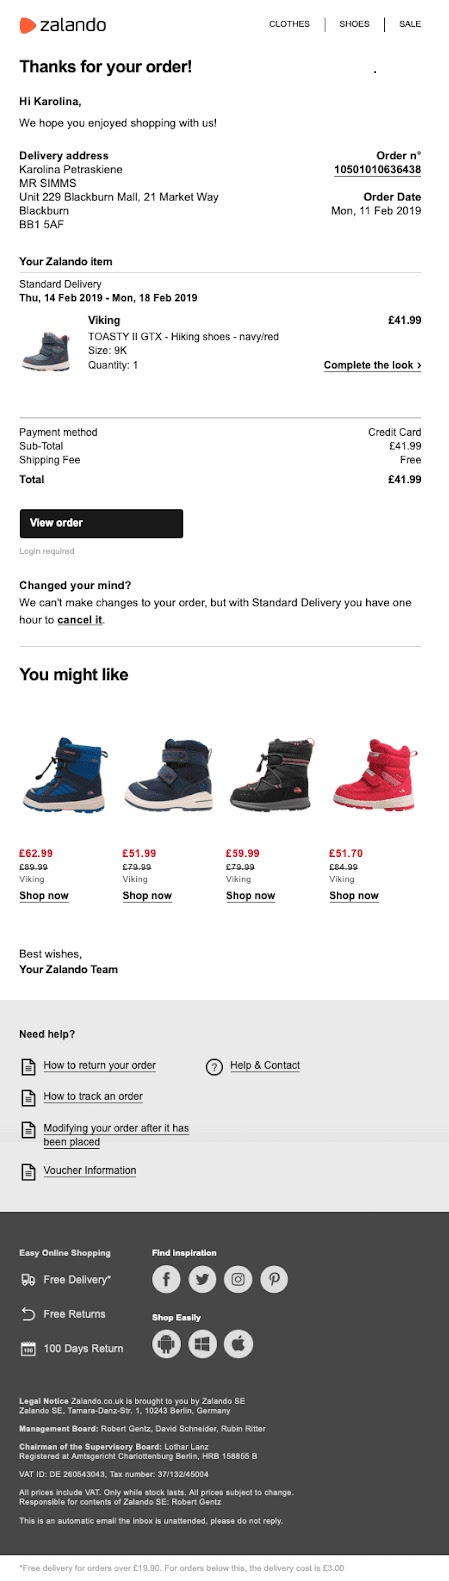 order confirmation email example from Zalando